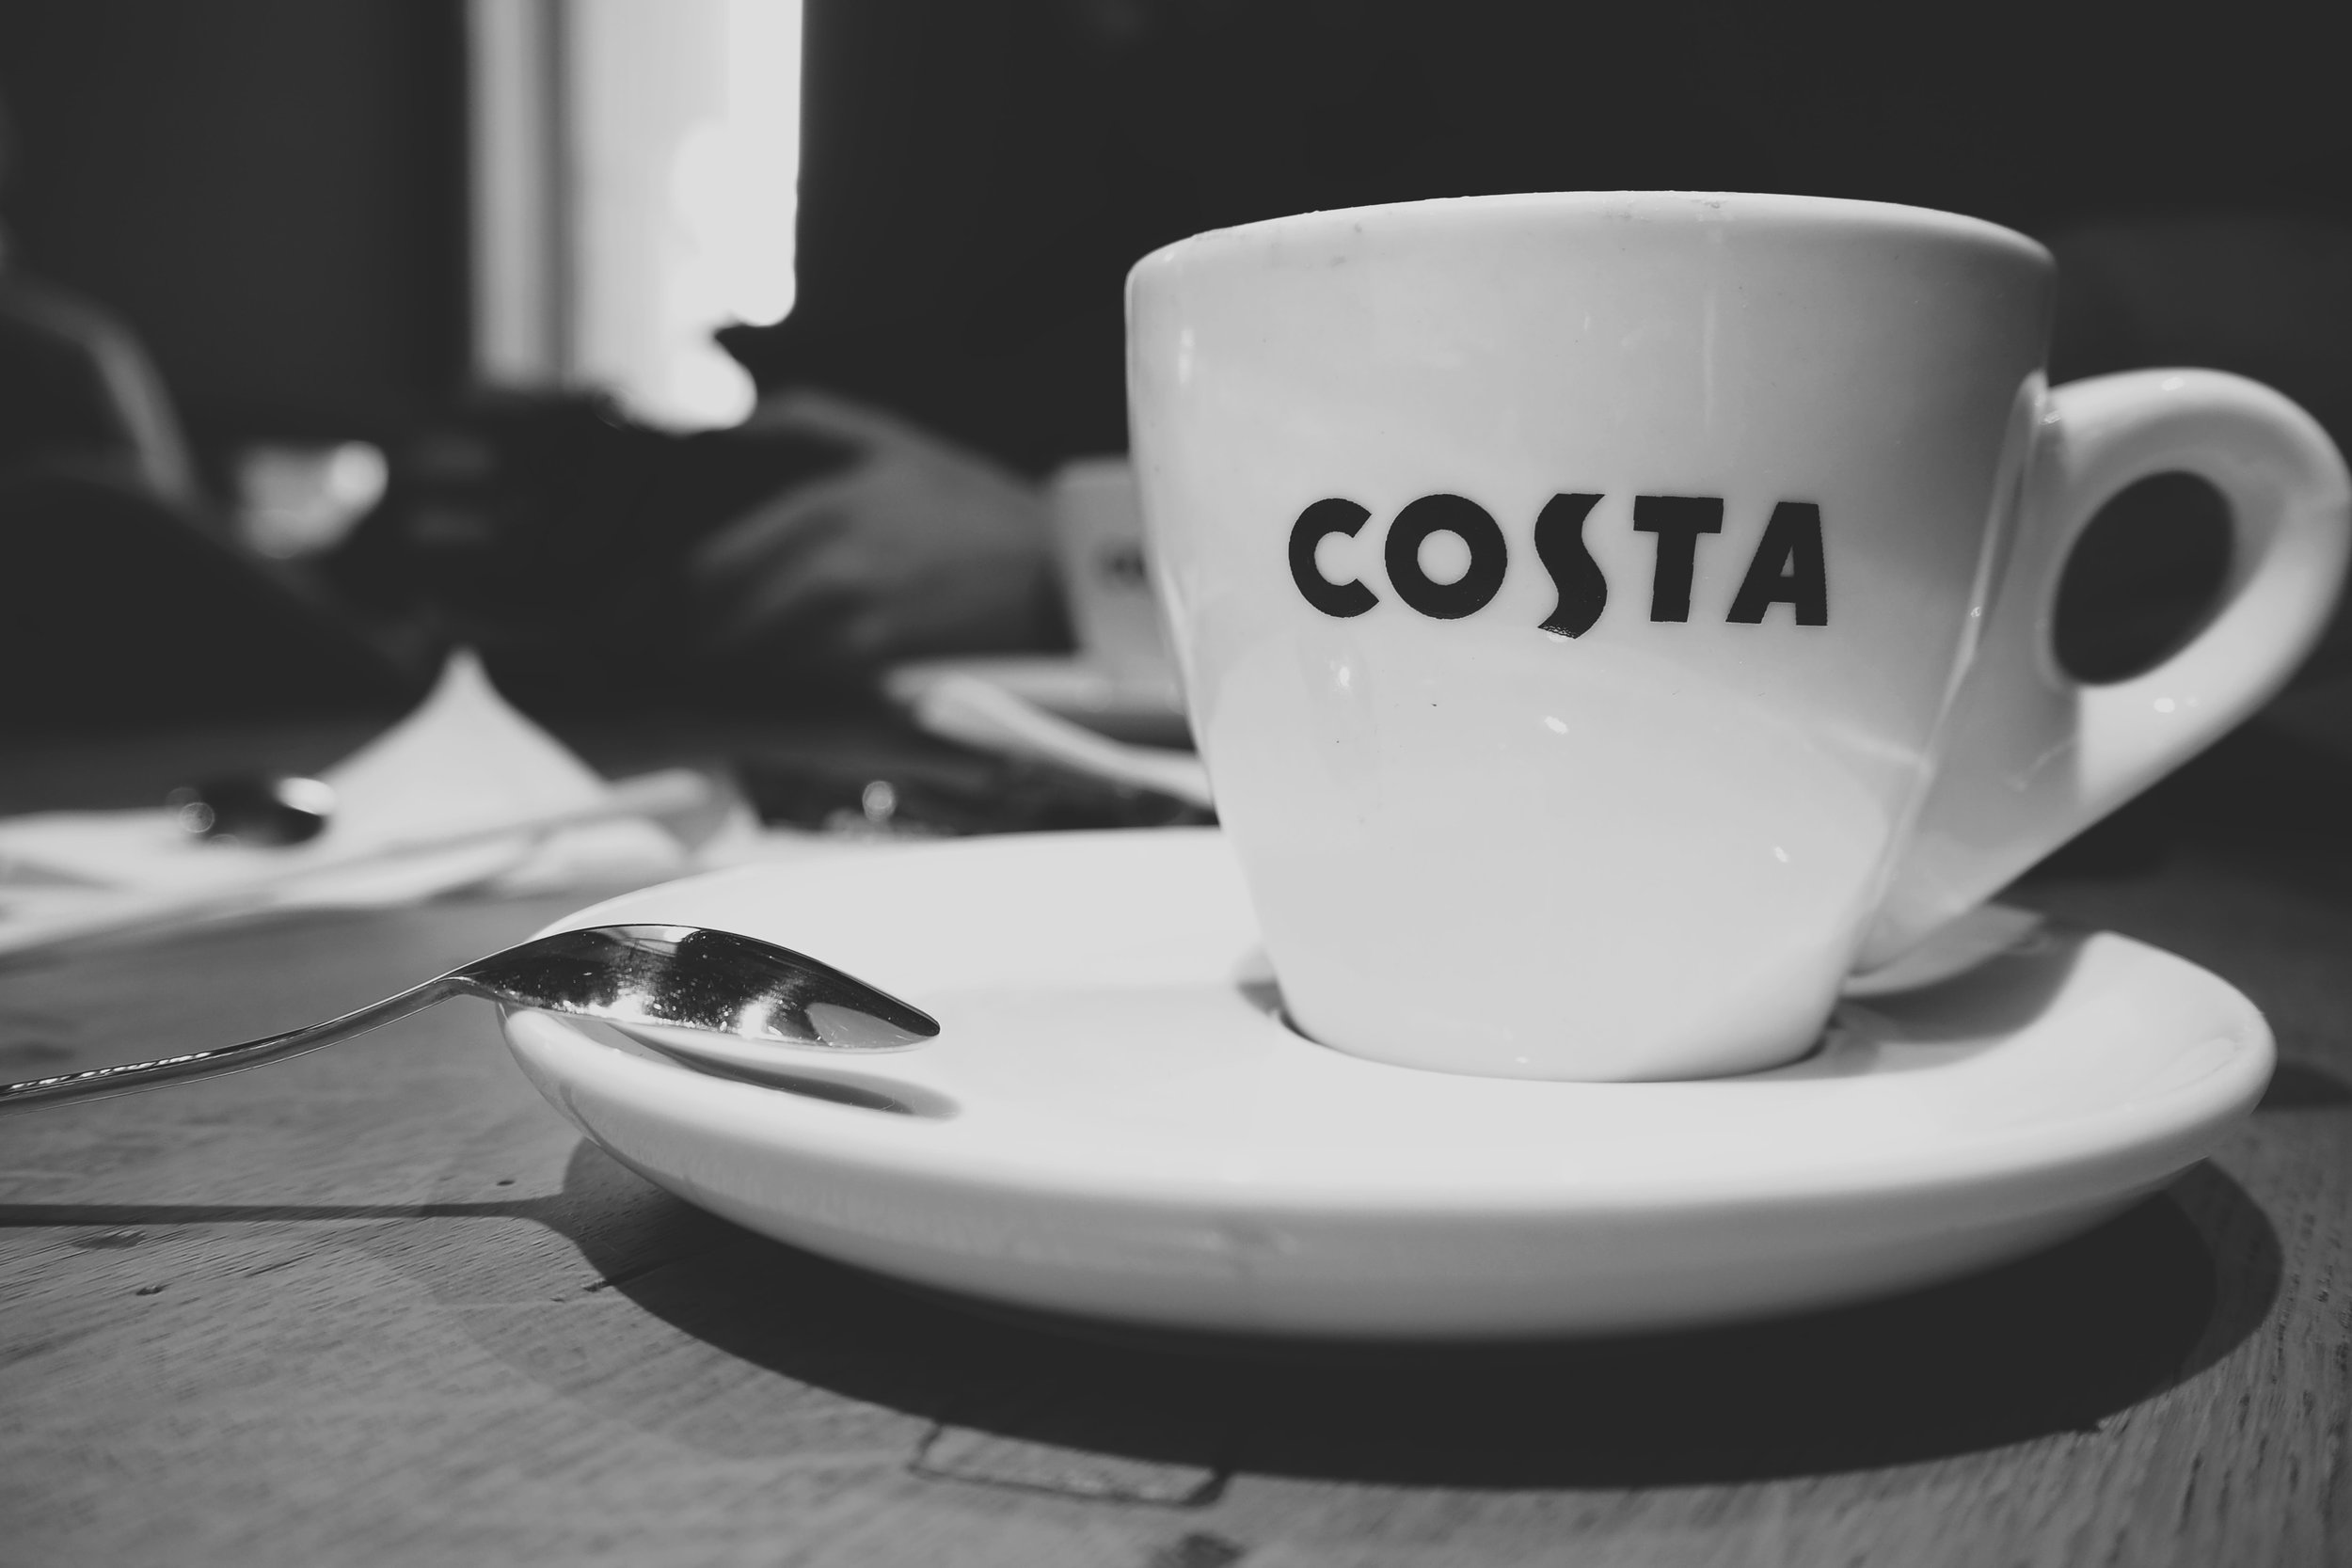 A Costa coffee cup sits on a table